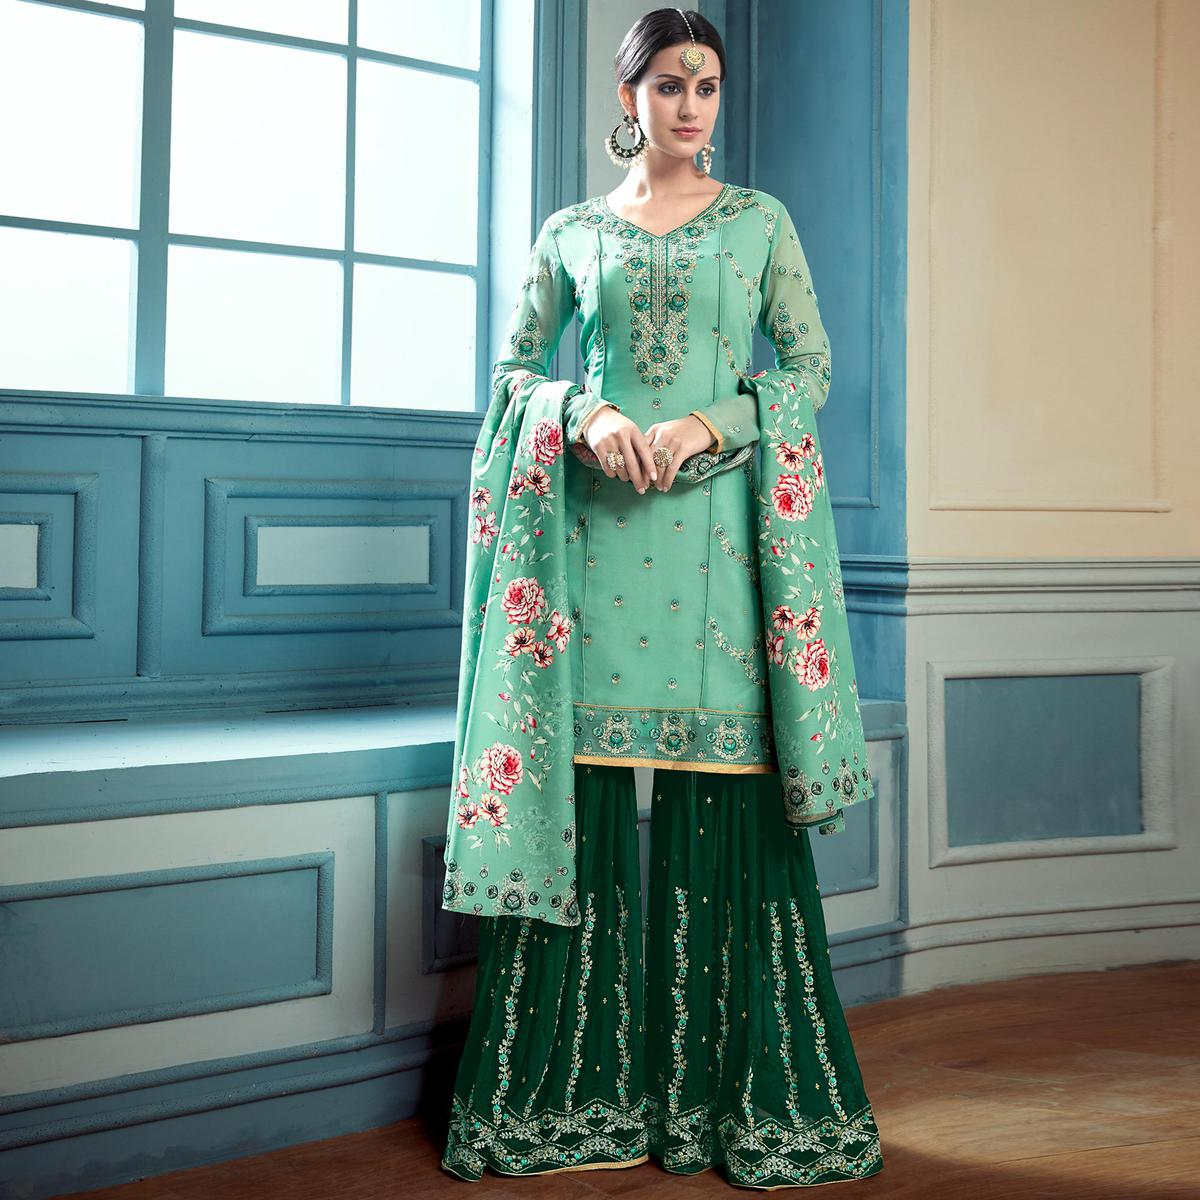 957fbfc01f Buy Stunning Turquoise Green Colored Partywear Embroidered Faux Georgette  Palazzo Suit For womens online India, Best Prices, Reviews - Peachmode